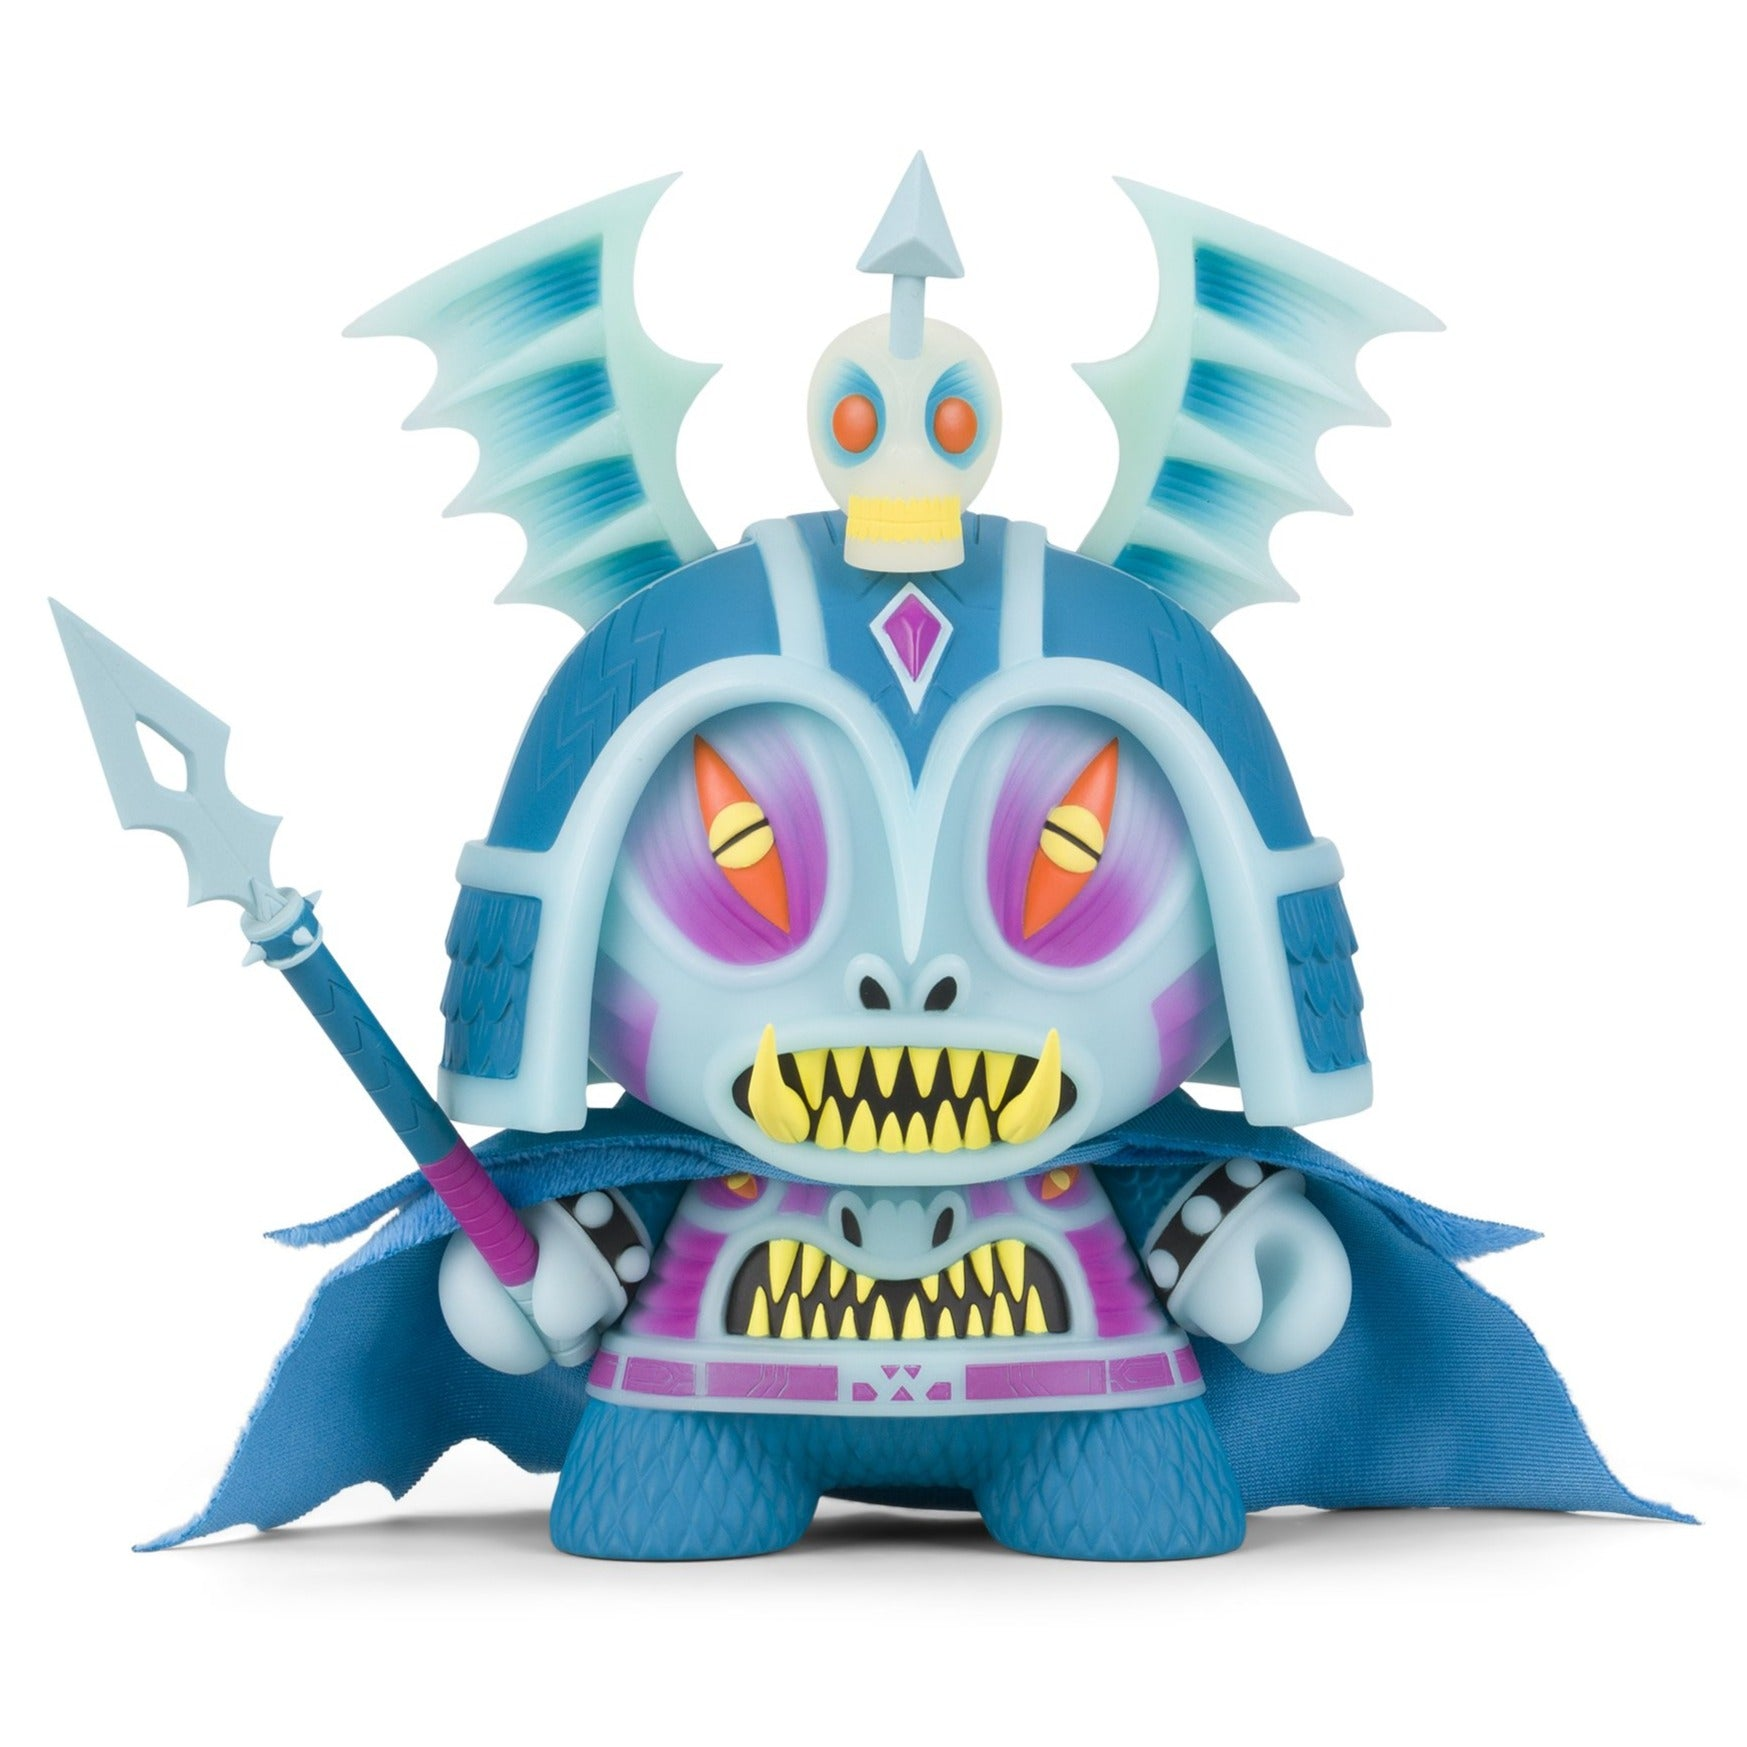 "Harbinger 8"" Dunny Art Figure by Martin Ontiveros - Kidrobot.com Exclusive GID Blue Edition"